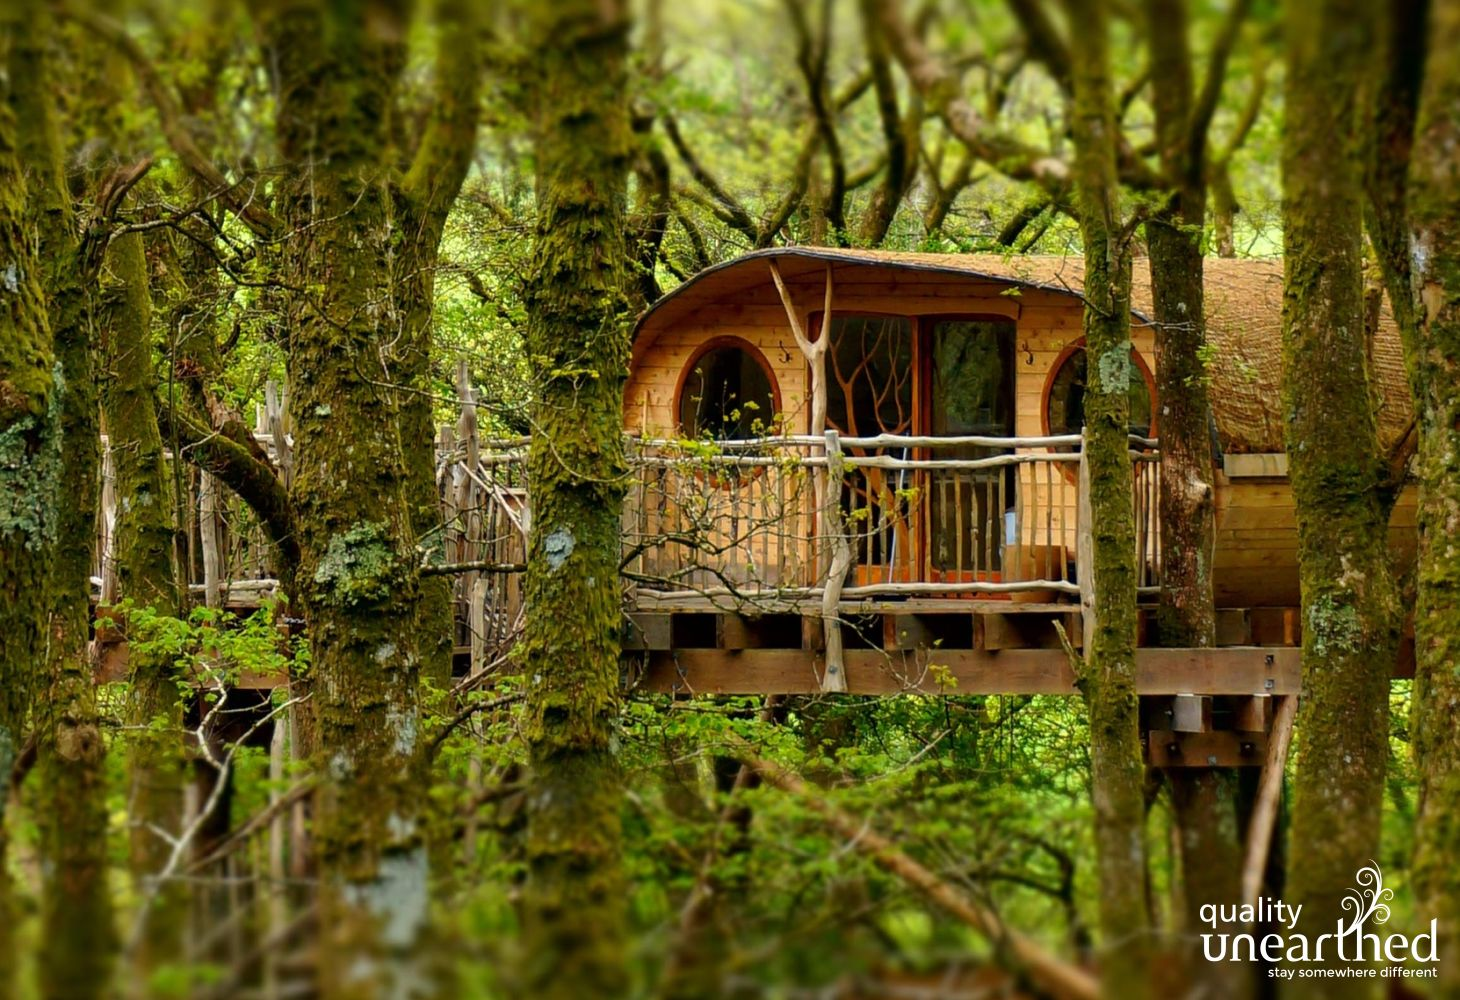 A green roofed hobbit like treehouse right in the middle of mature woodland. Trees are covered in moss and lichen showing the clear woodland air